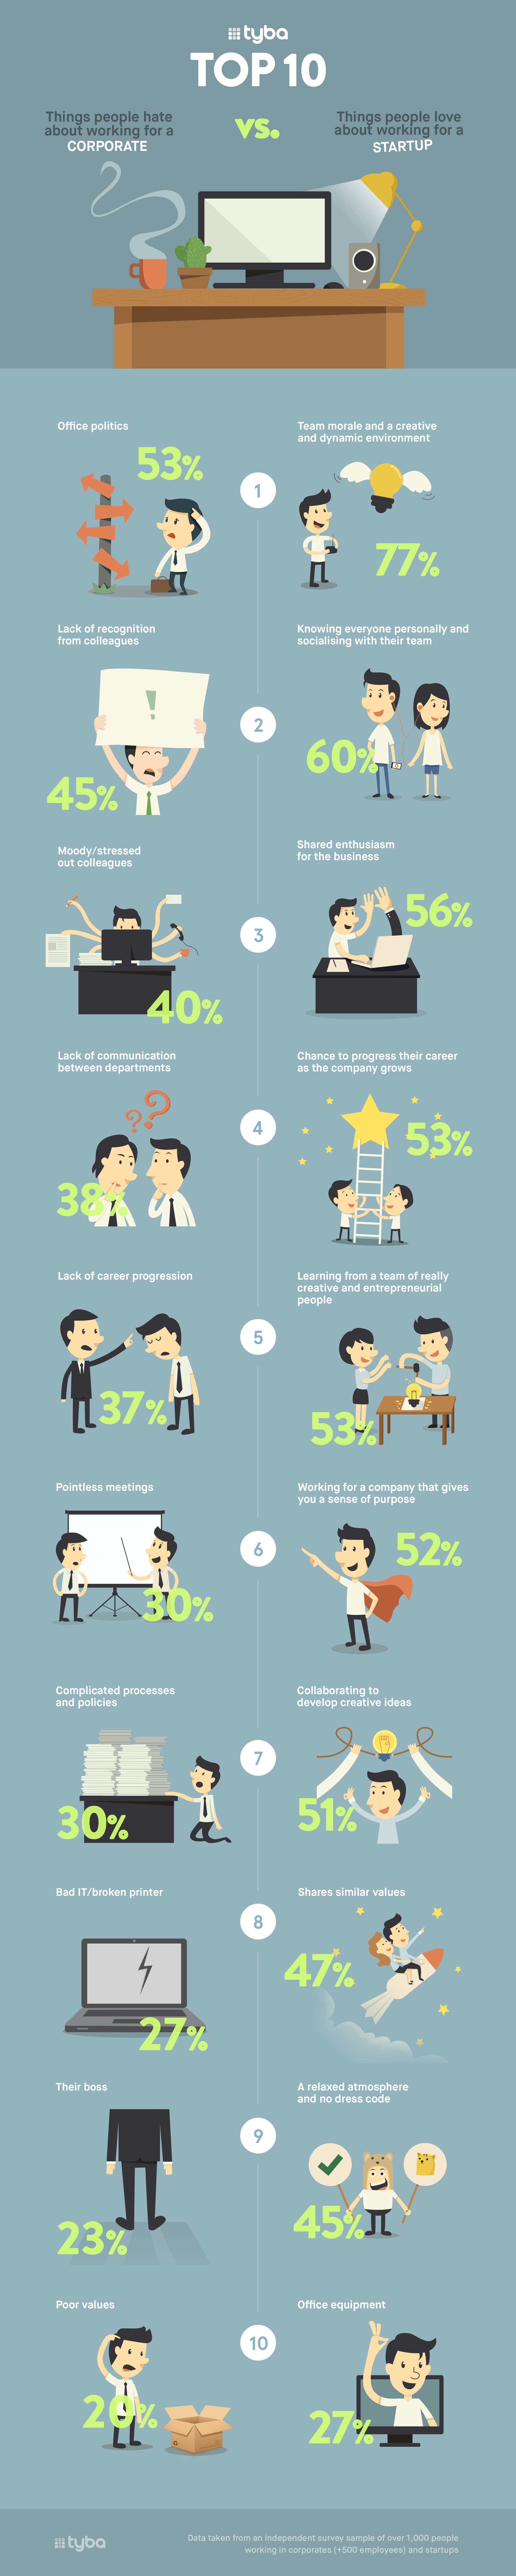 Top 10 differences between working for a corporate or a start-up (infographic)